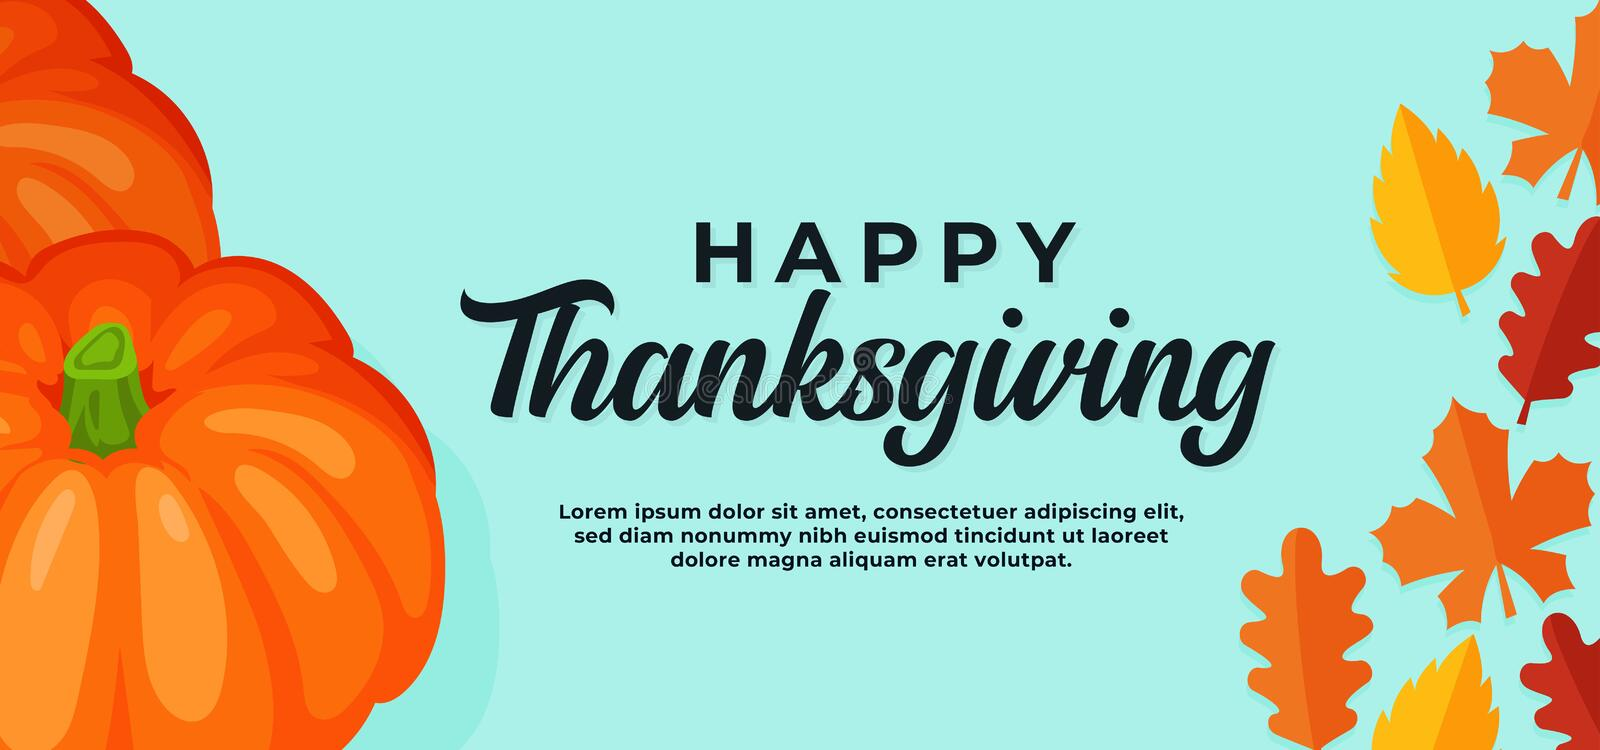 Happy thanksgiving day background. pumpkin illustration with fall dry leaves vector illustration banner template. Eps 10 royalty free illustration